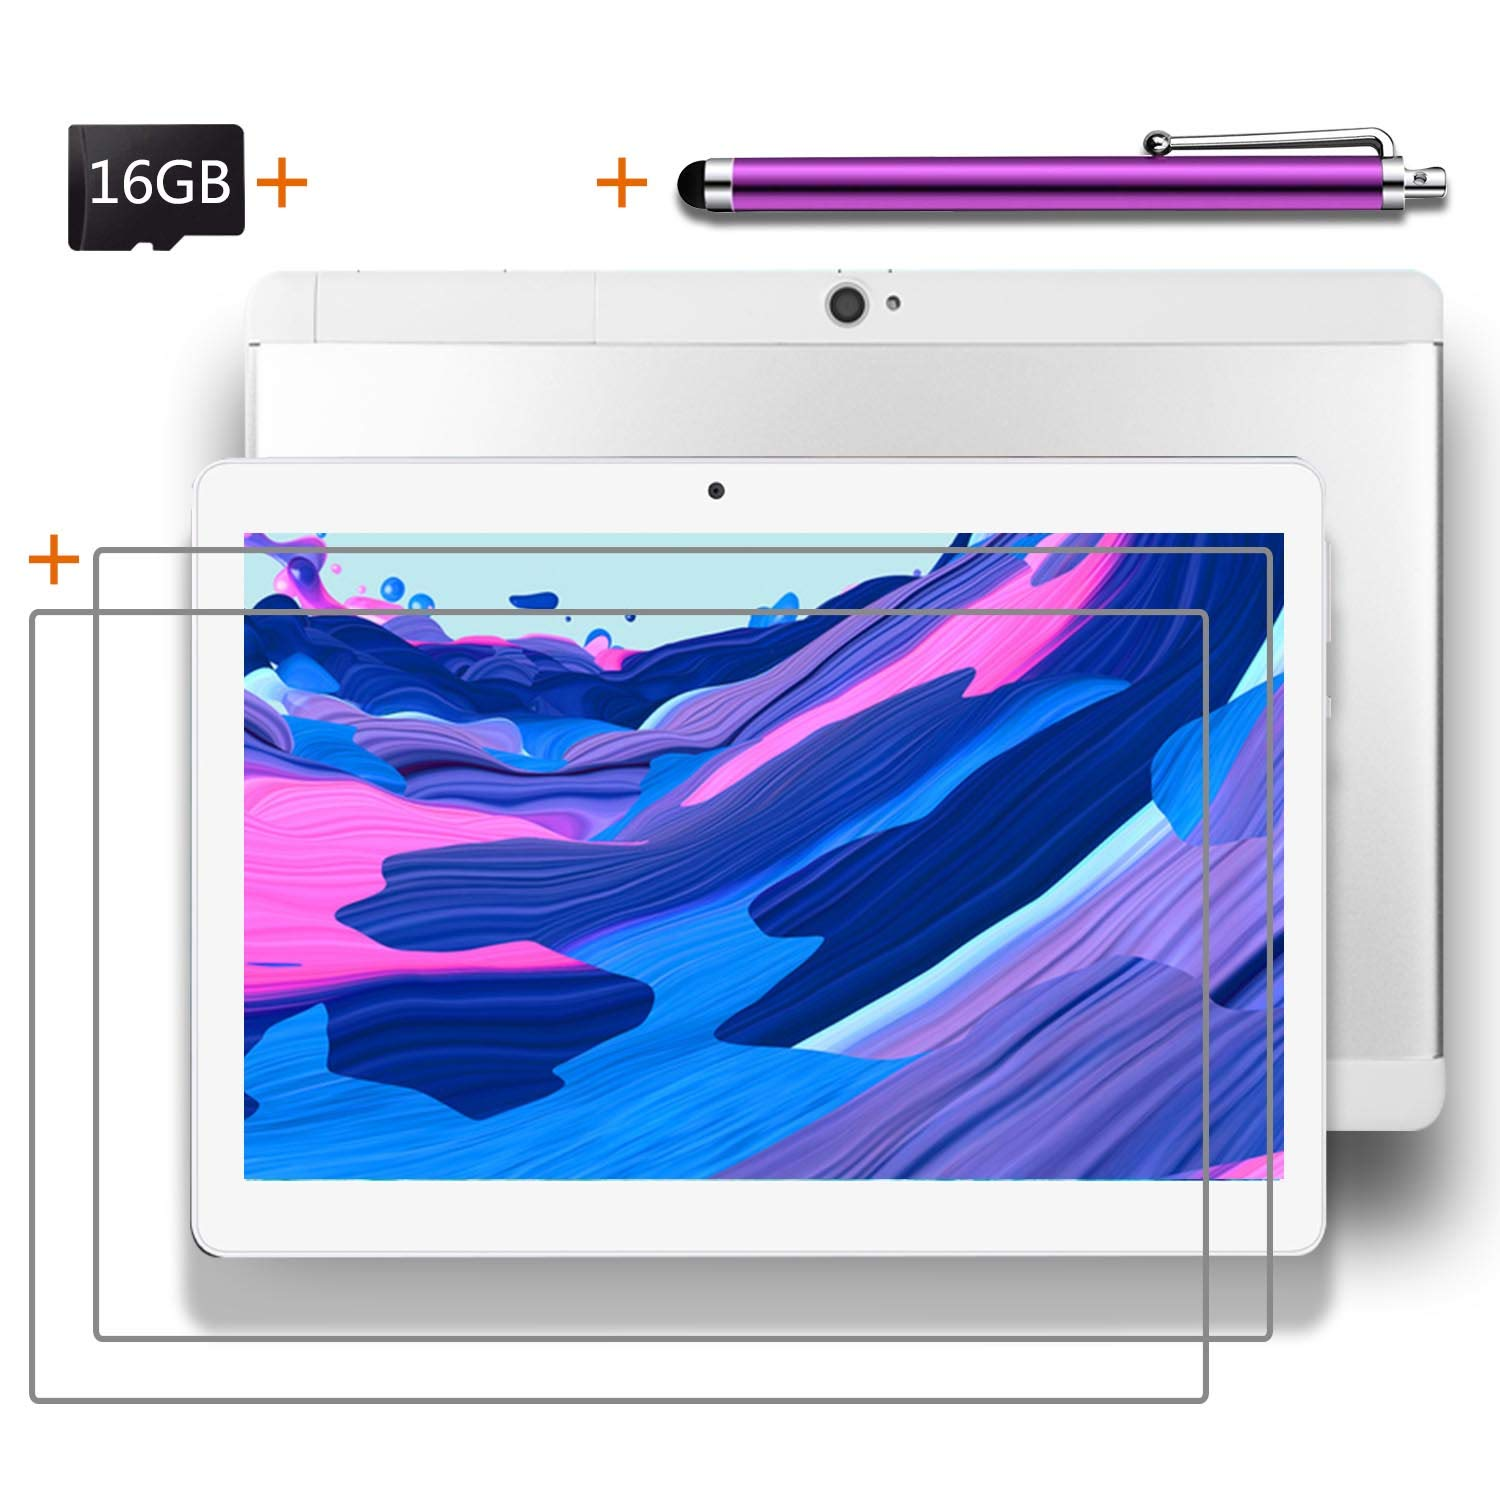 Android Tablet 10 inch with SIM Card Slot Unlocked +(2) Screen Protector +16GB SD Card +(1) Stylus Pen - IPS Screen 3G Phablet with WiFi GPS Bluetooth Tablets - Silver & White (1GB+16GB)